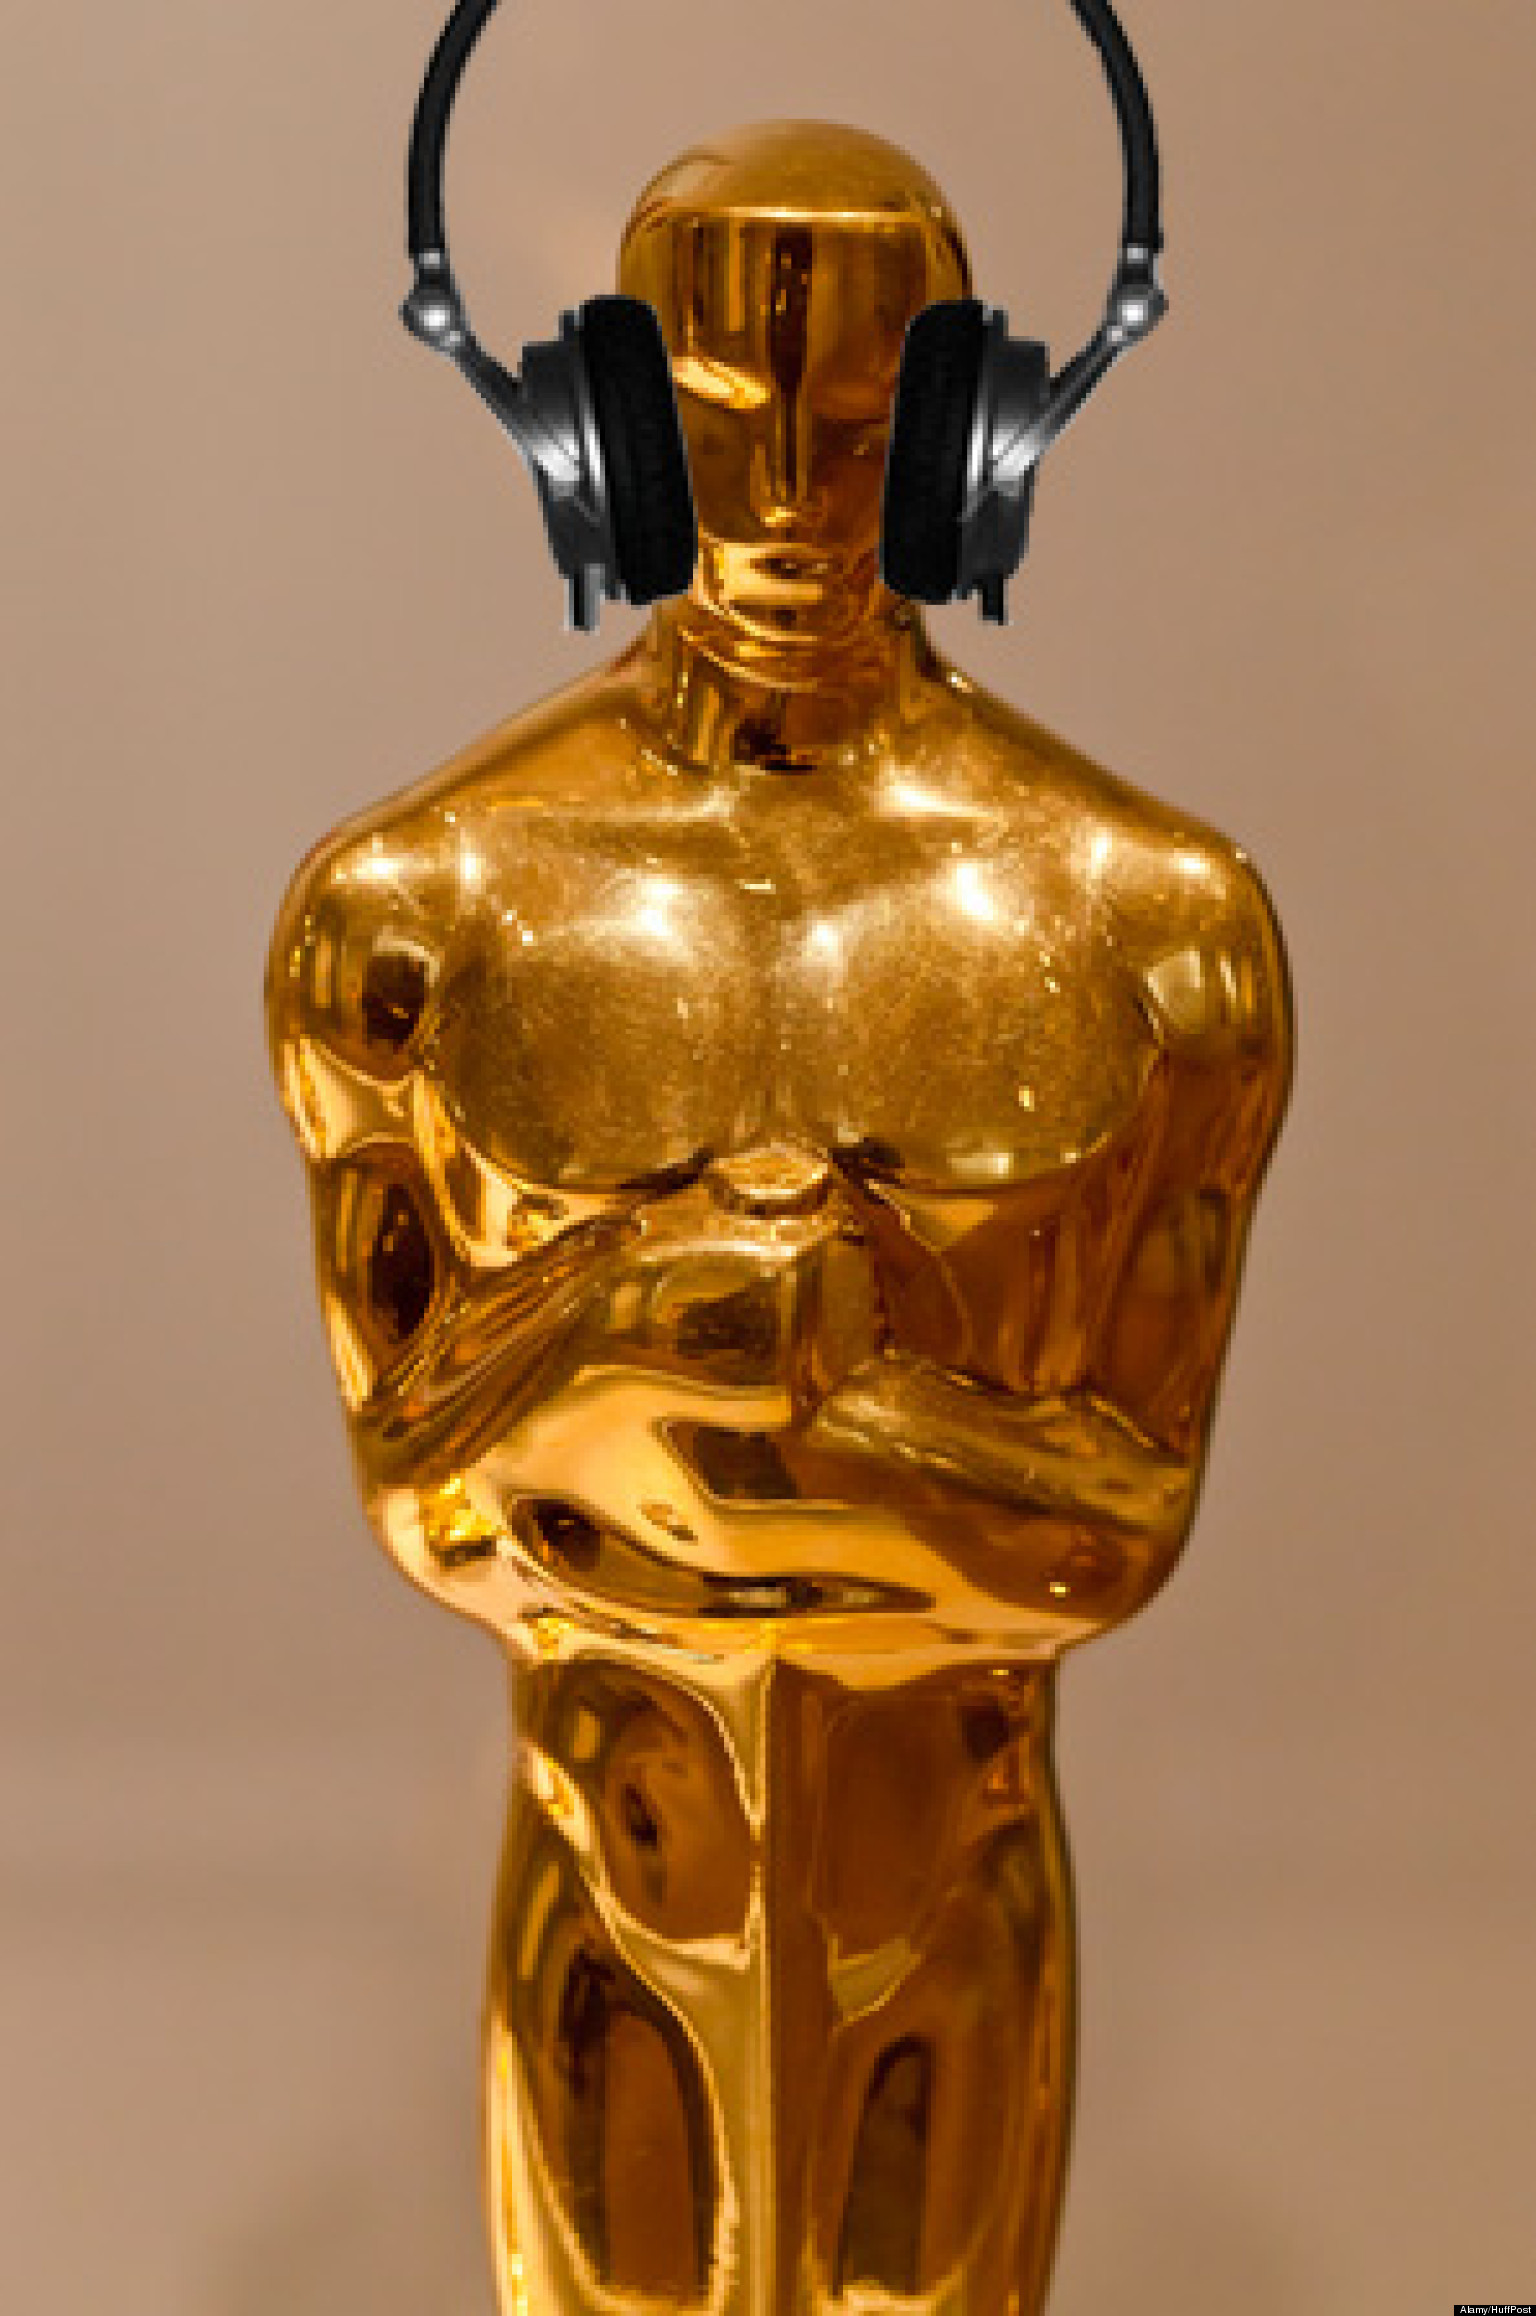 HuffPost Workouts Oscar Winning Music You Can Exercise To